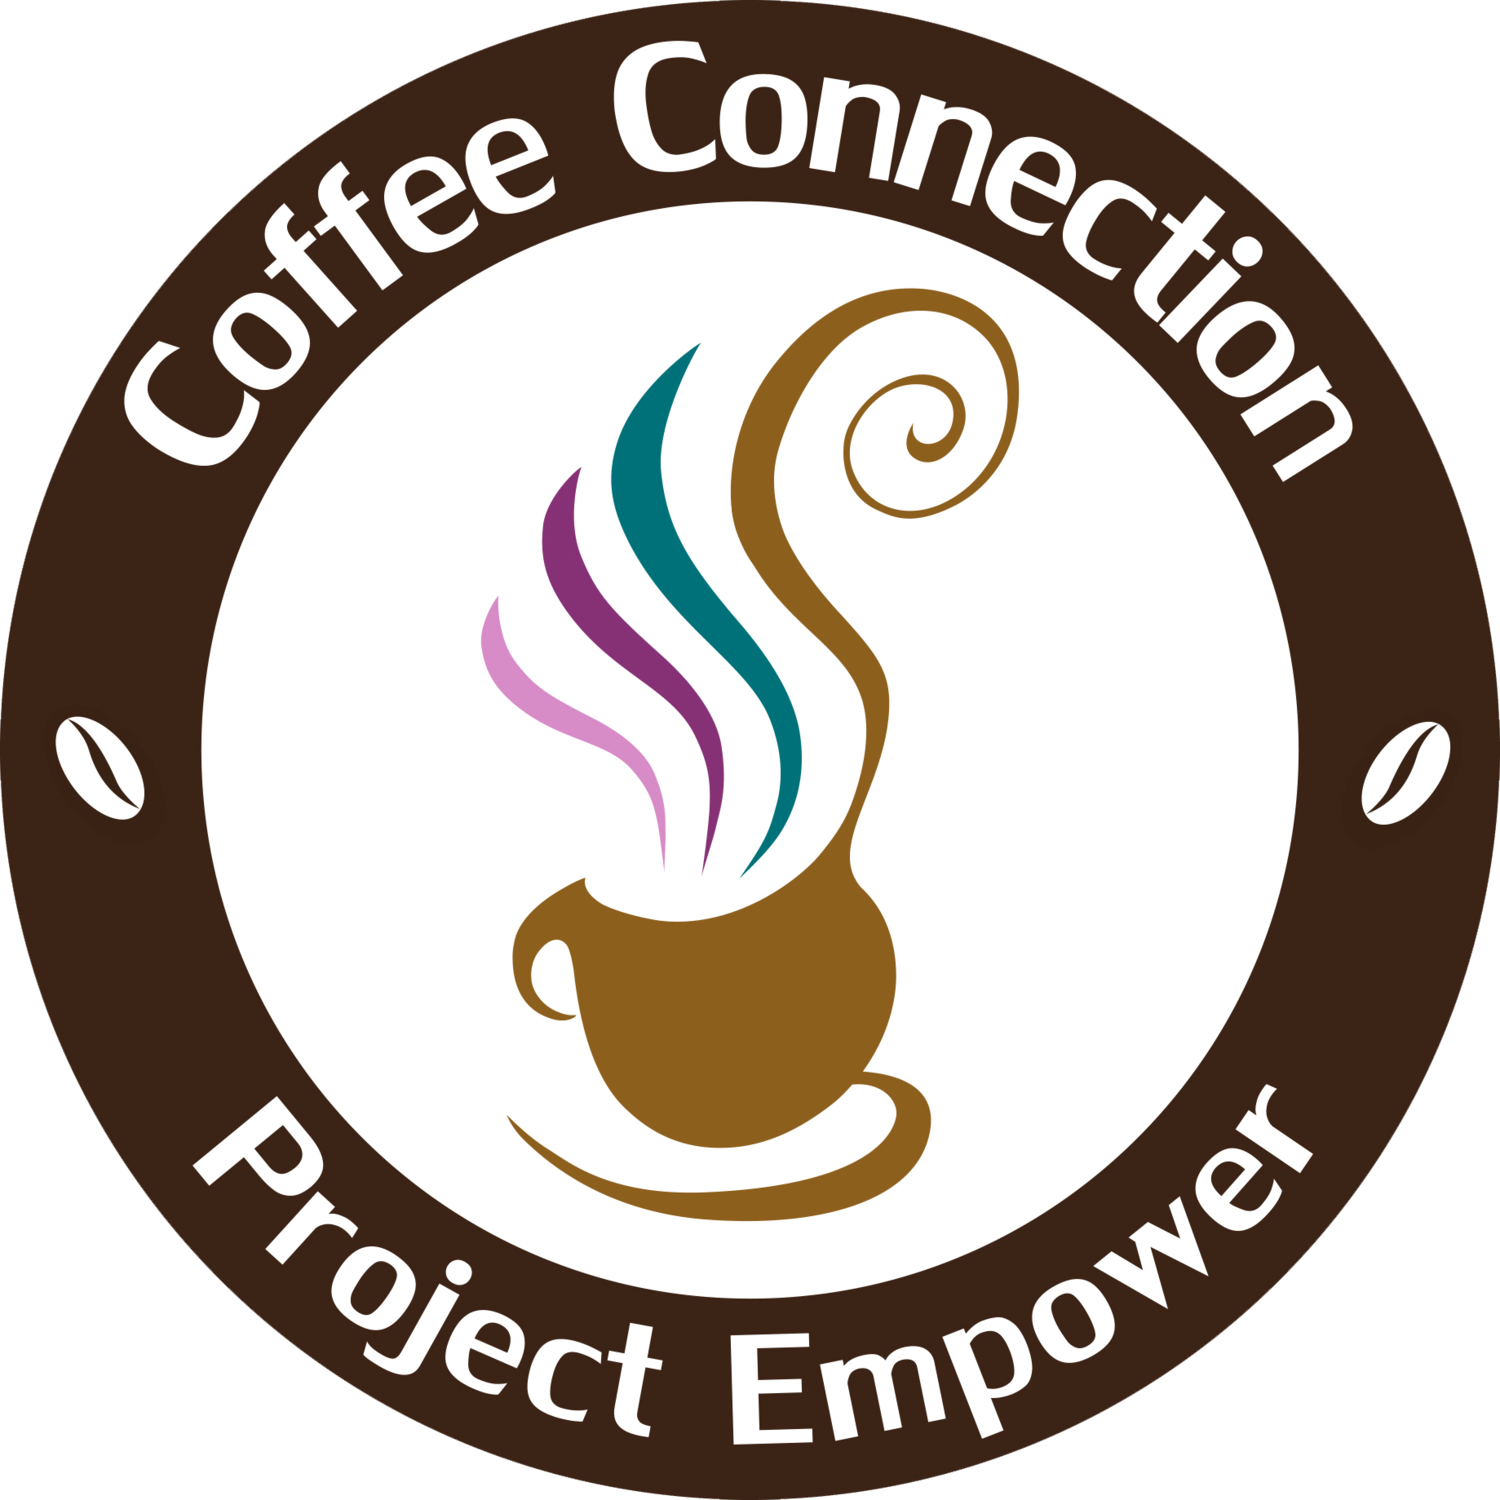 Coffee Connection logo